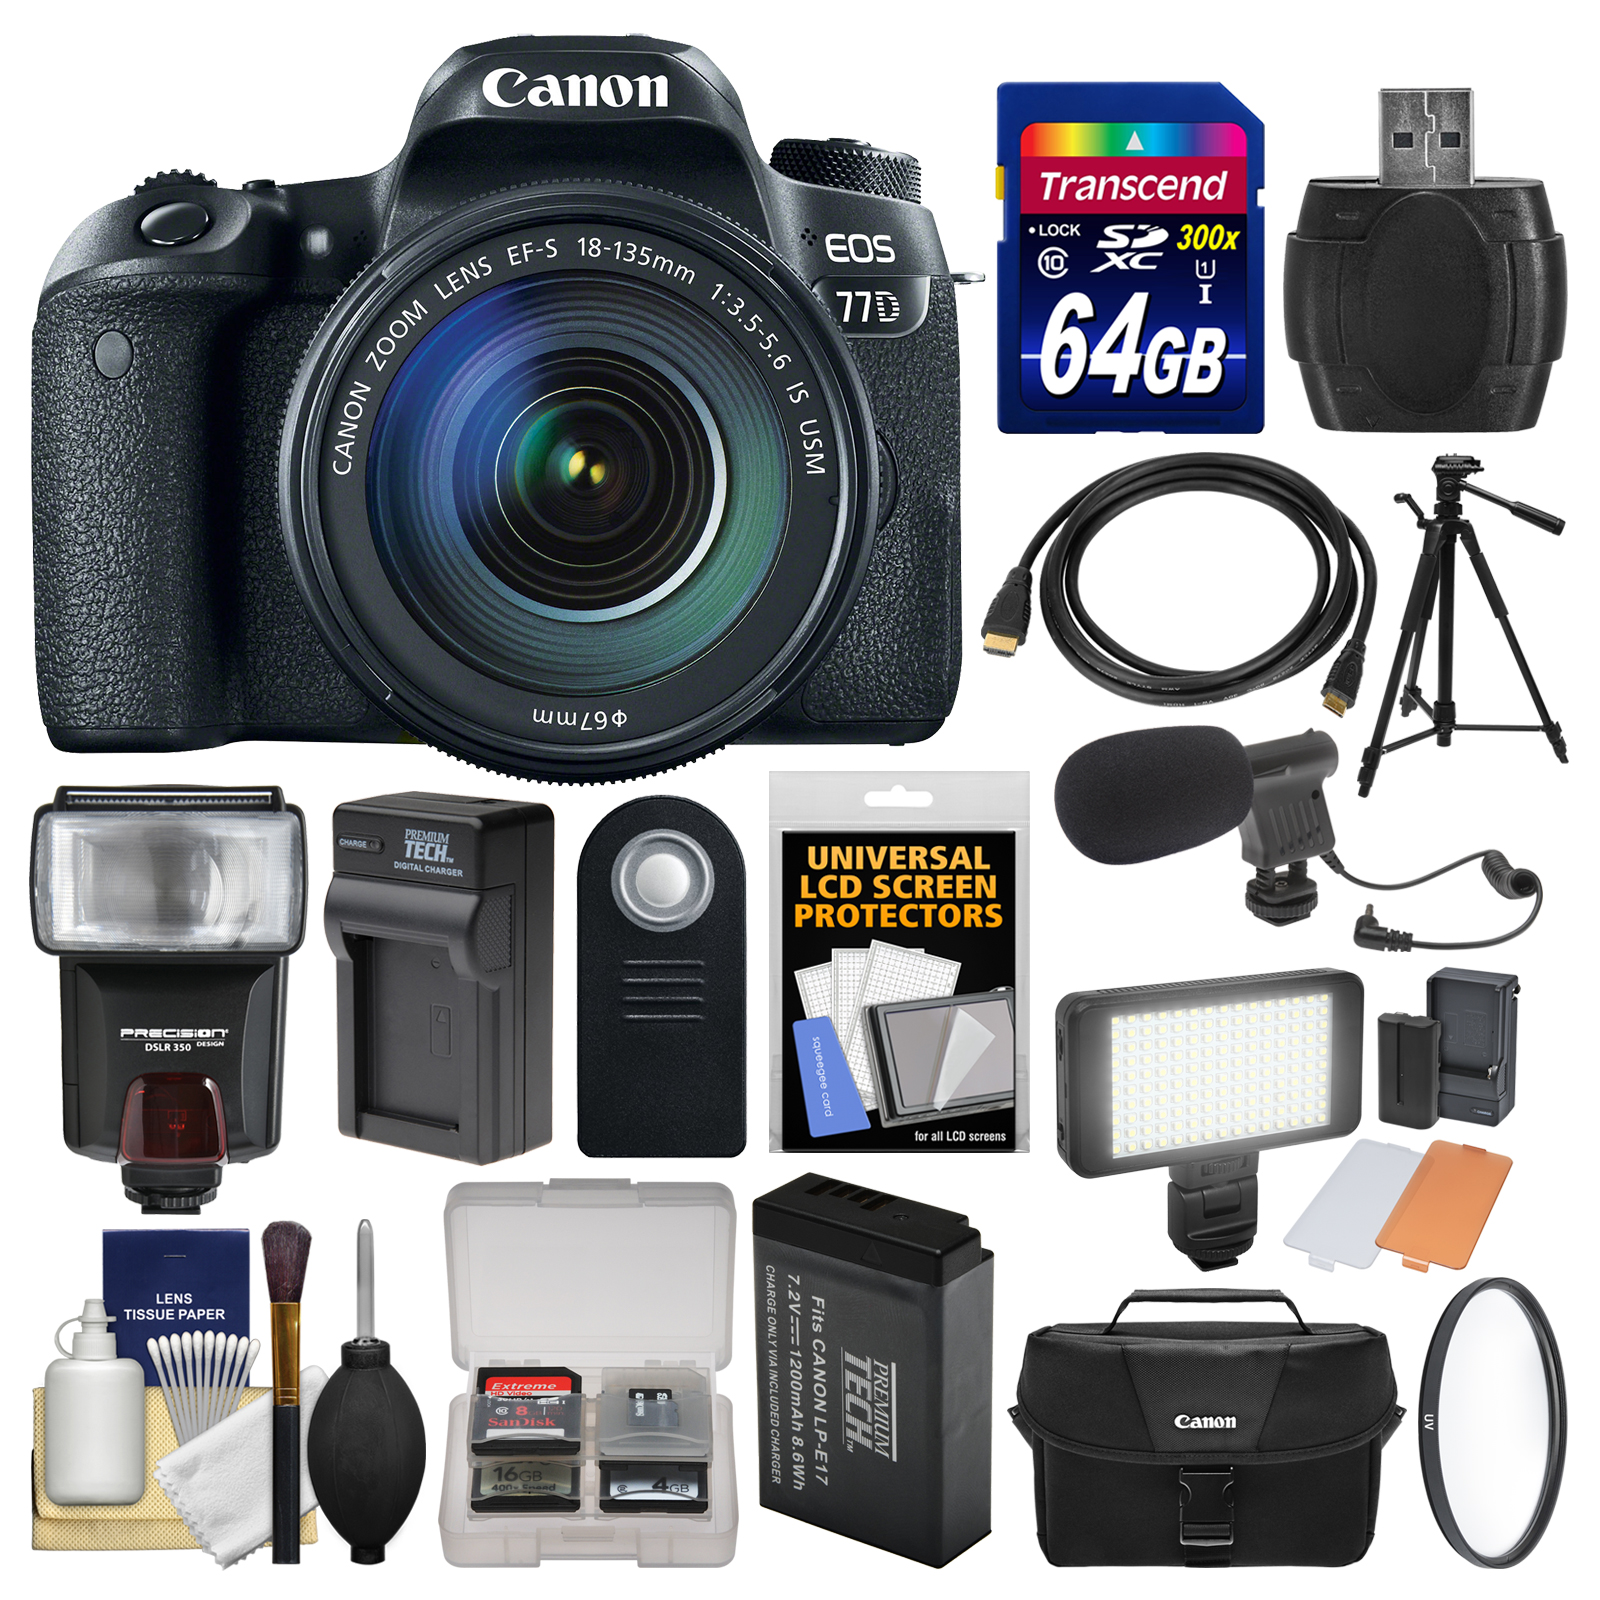 Canon EOS 77D Wi-Fi Digital SLR Camera & EF-S 18-135mm IS USM Lens + 64GB Card + Case + Flash + Video Light +... by Canon